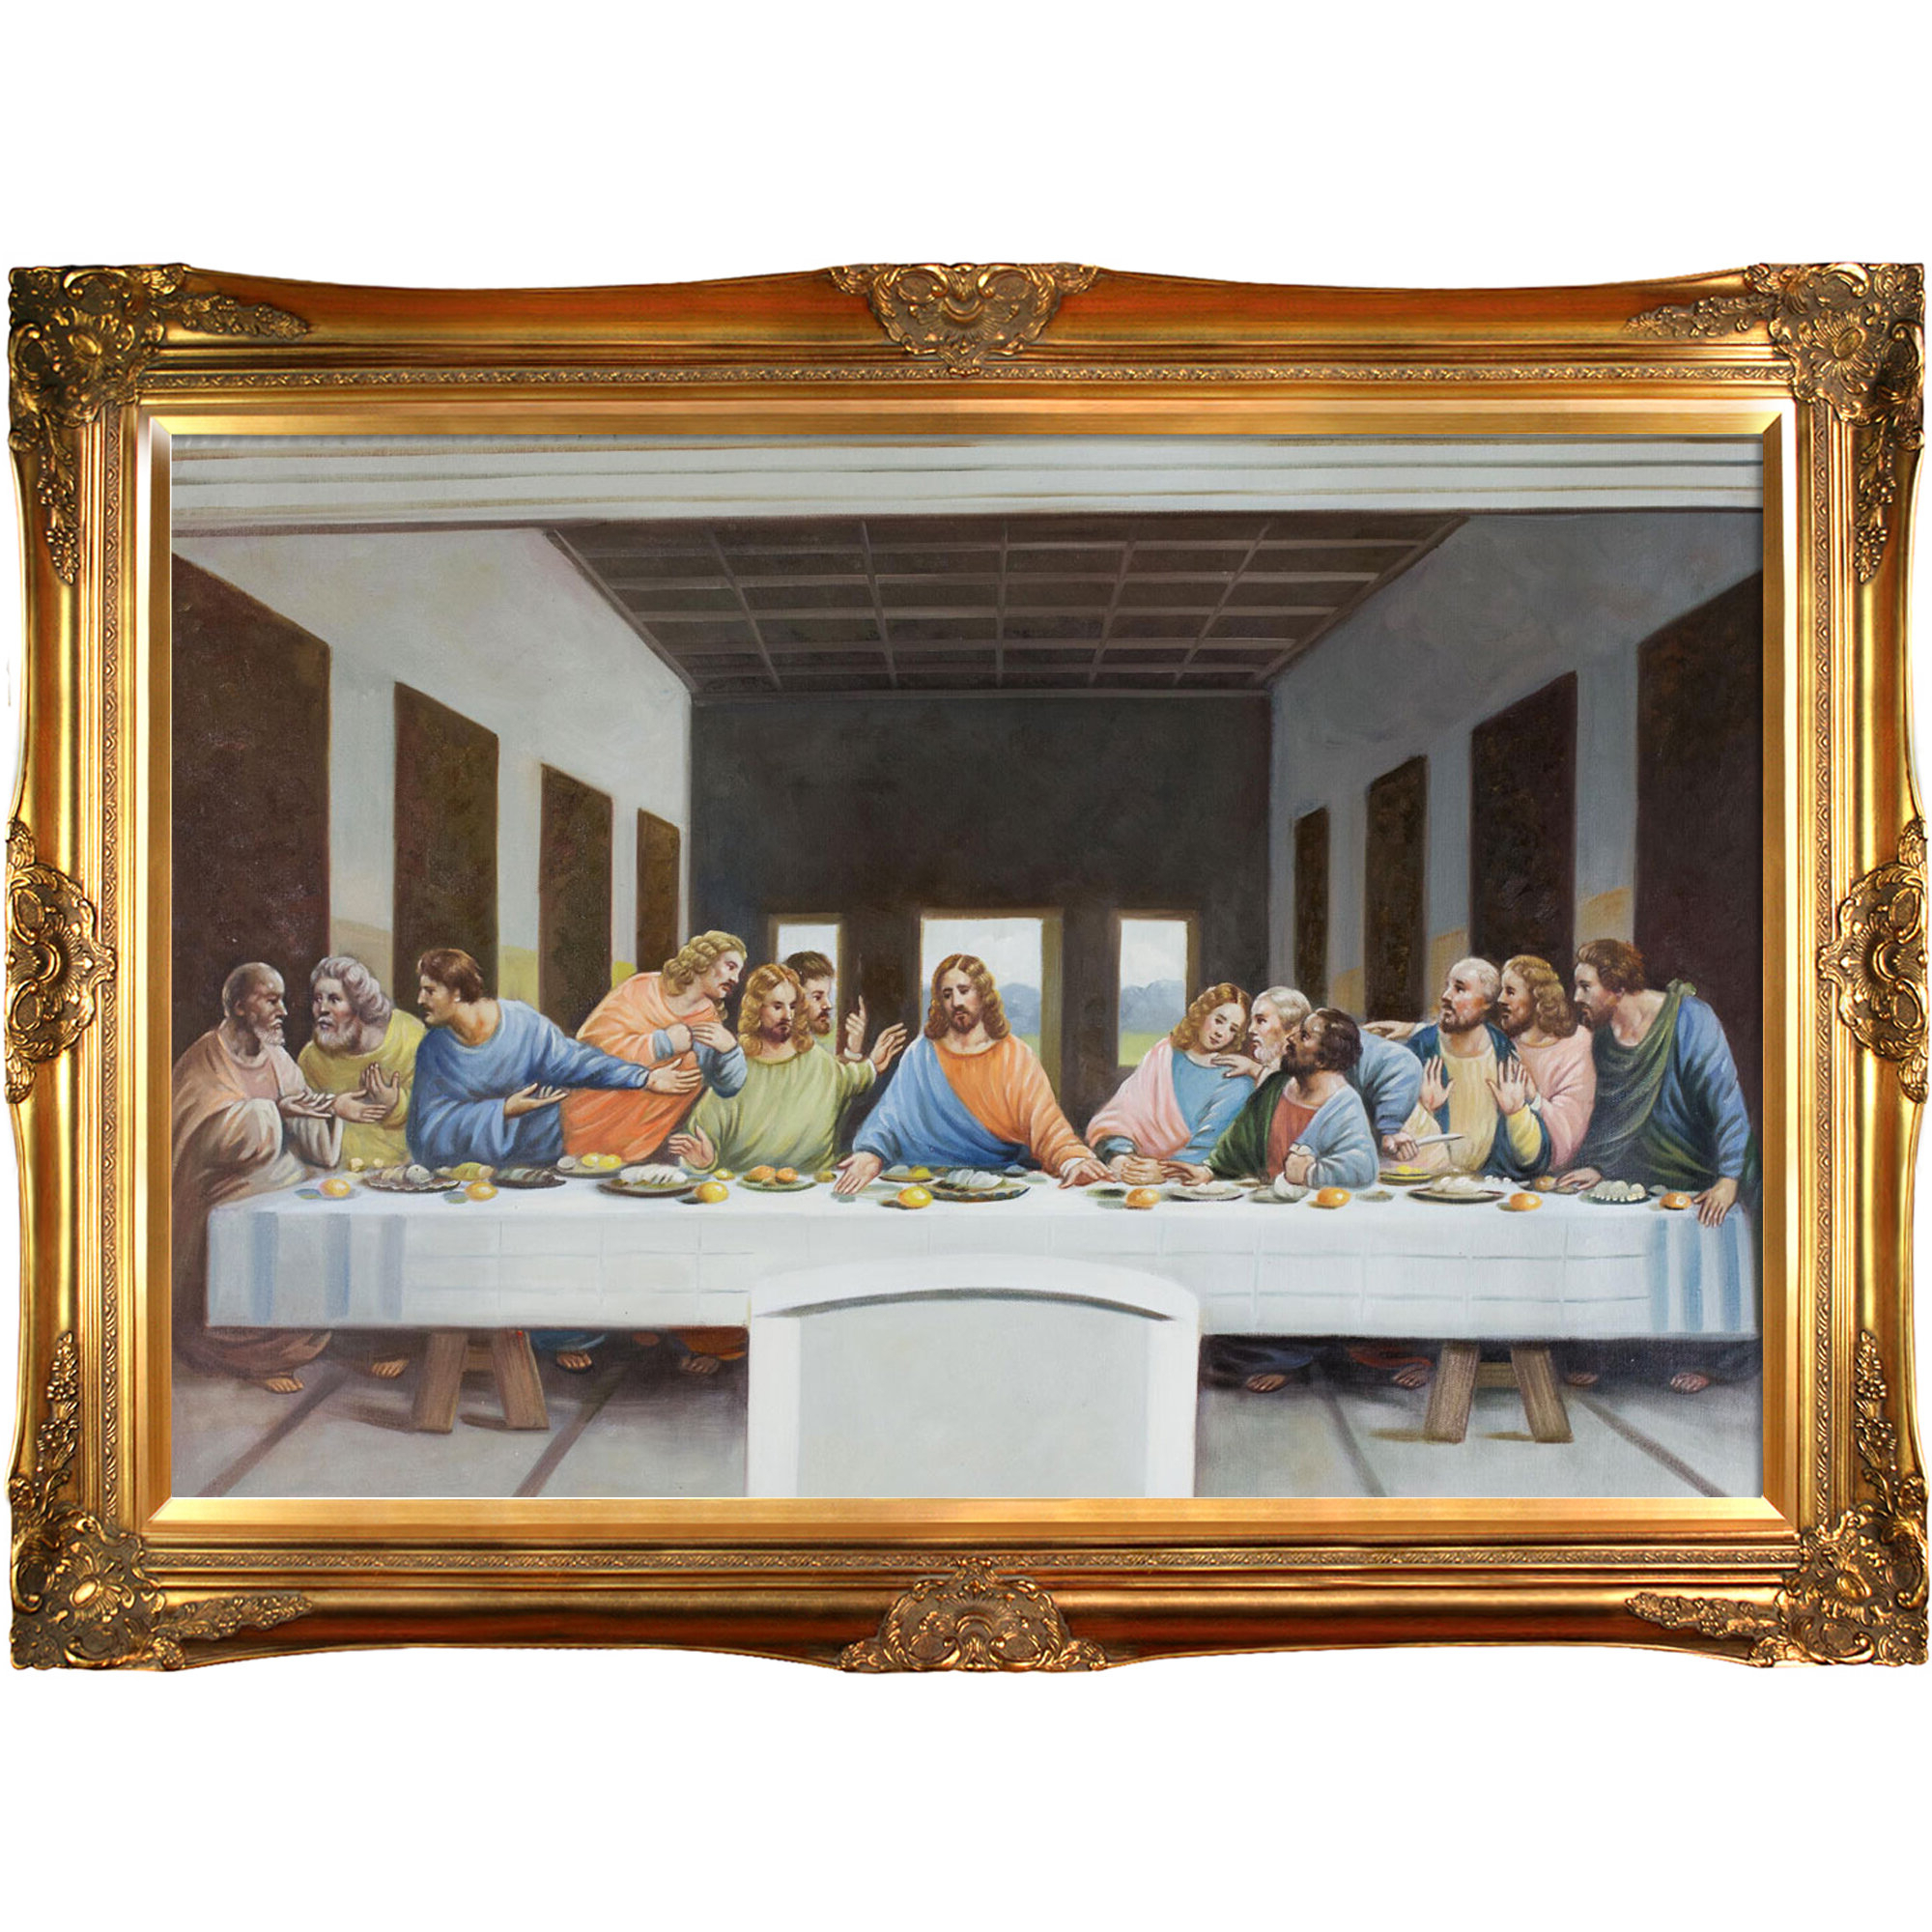 Well Liked Art Prints Jesus Christ The Last Supperleonardo Da Vinci In Blended Fabric Leonardo Davinci The Last Supper Wall Hangings (View 20 of 20)